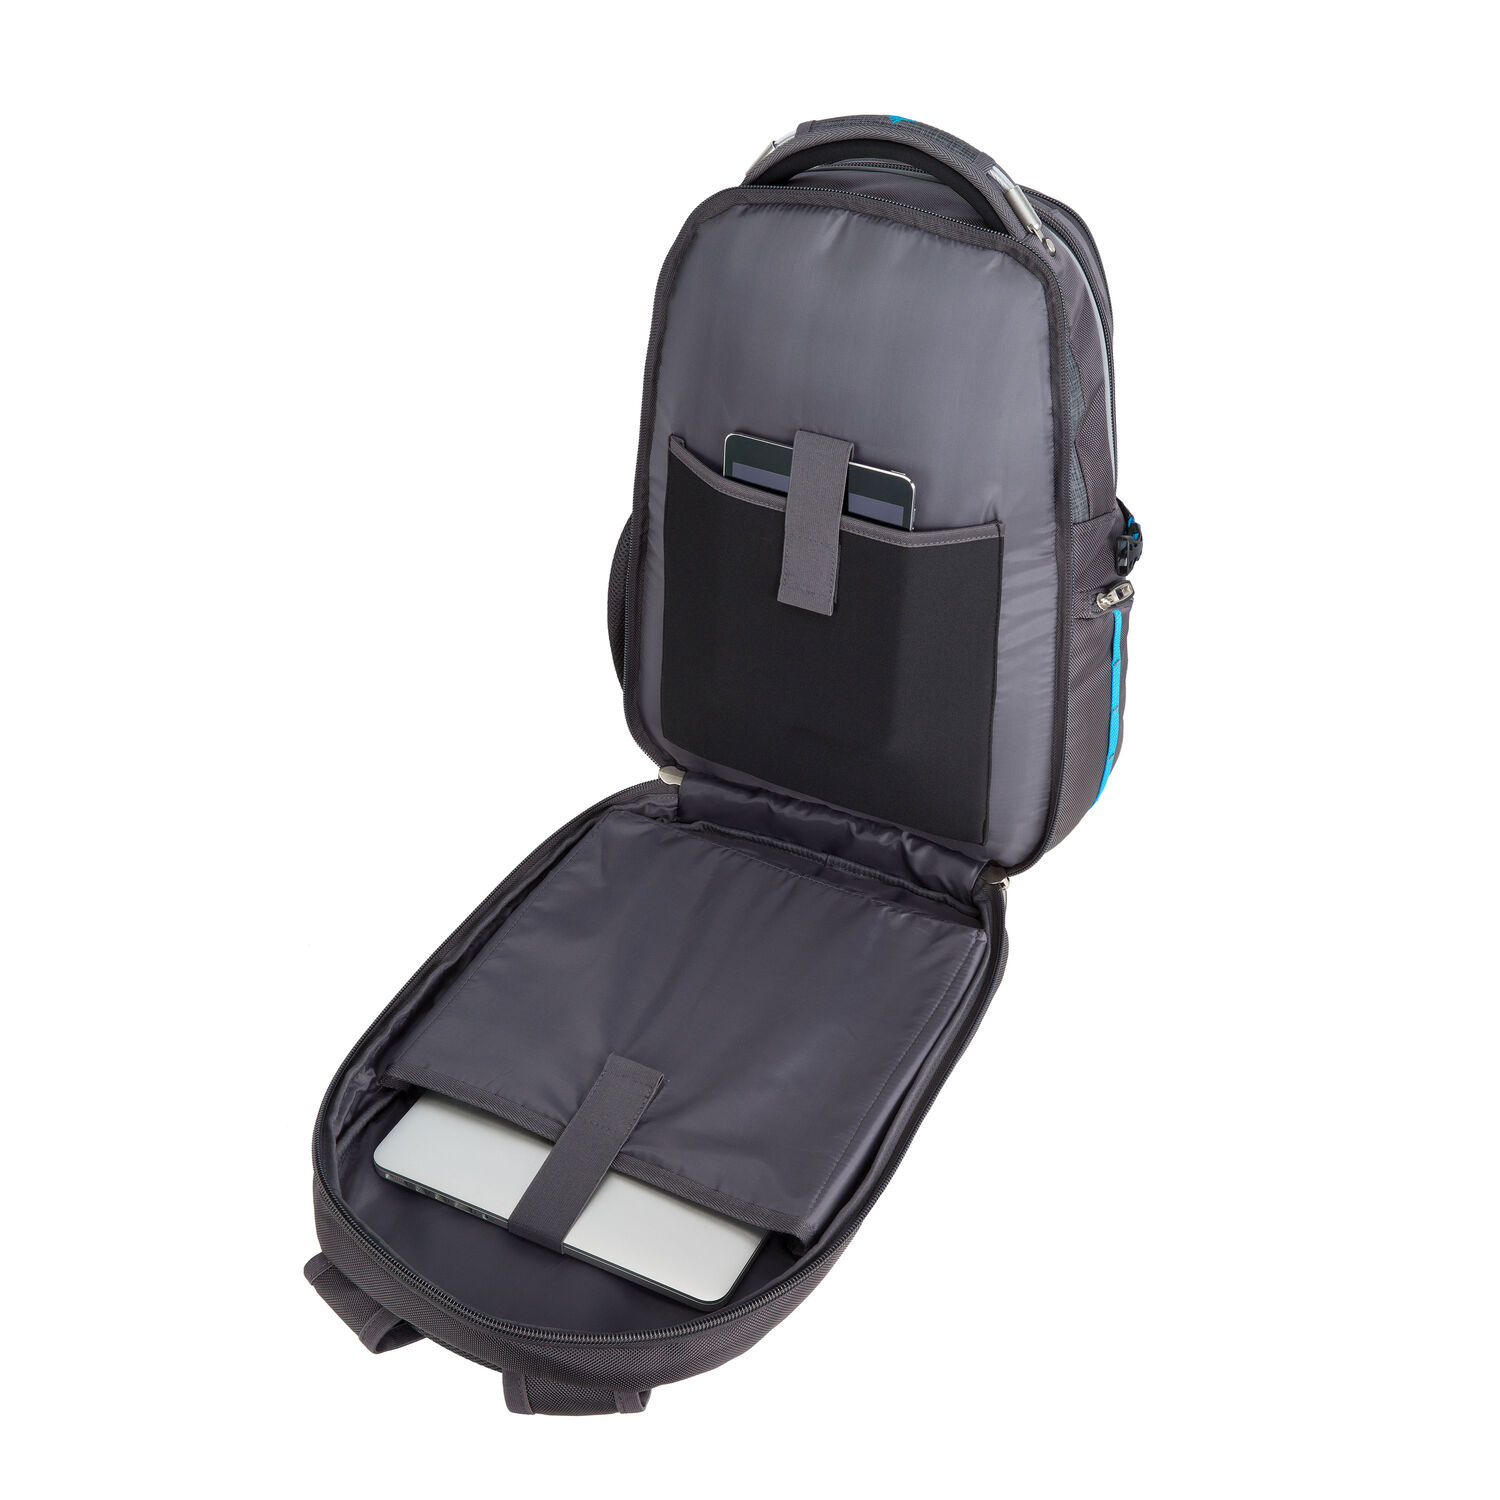 830d186aa3 High Sierra Vuna Travel Pack in the color Black Charcoal.